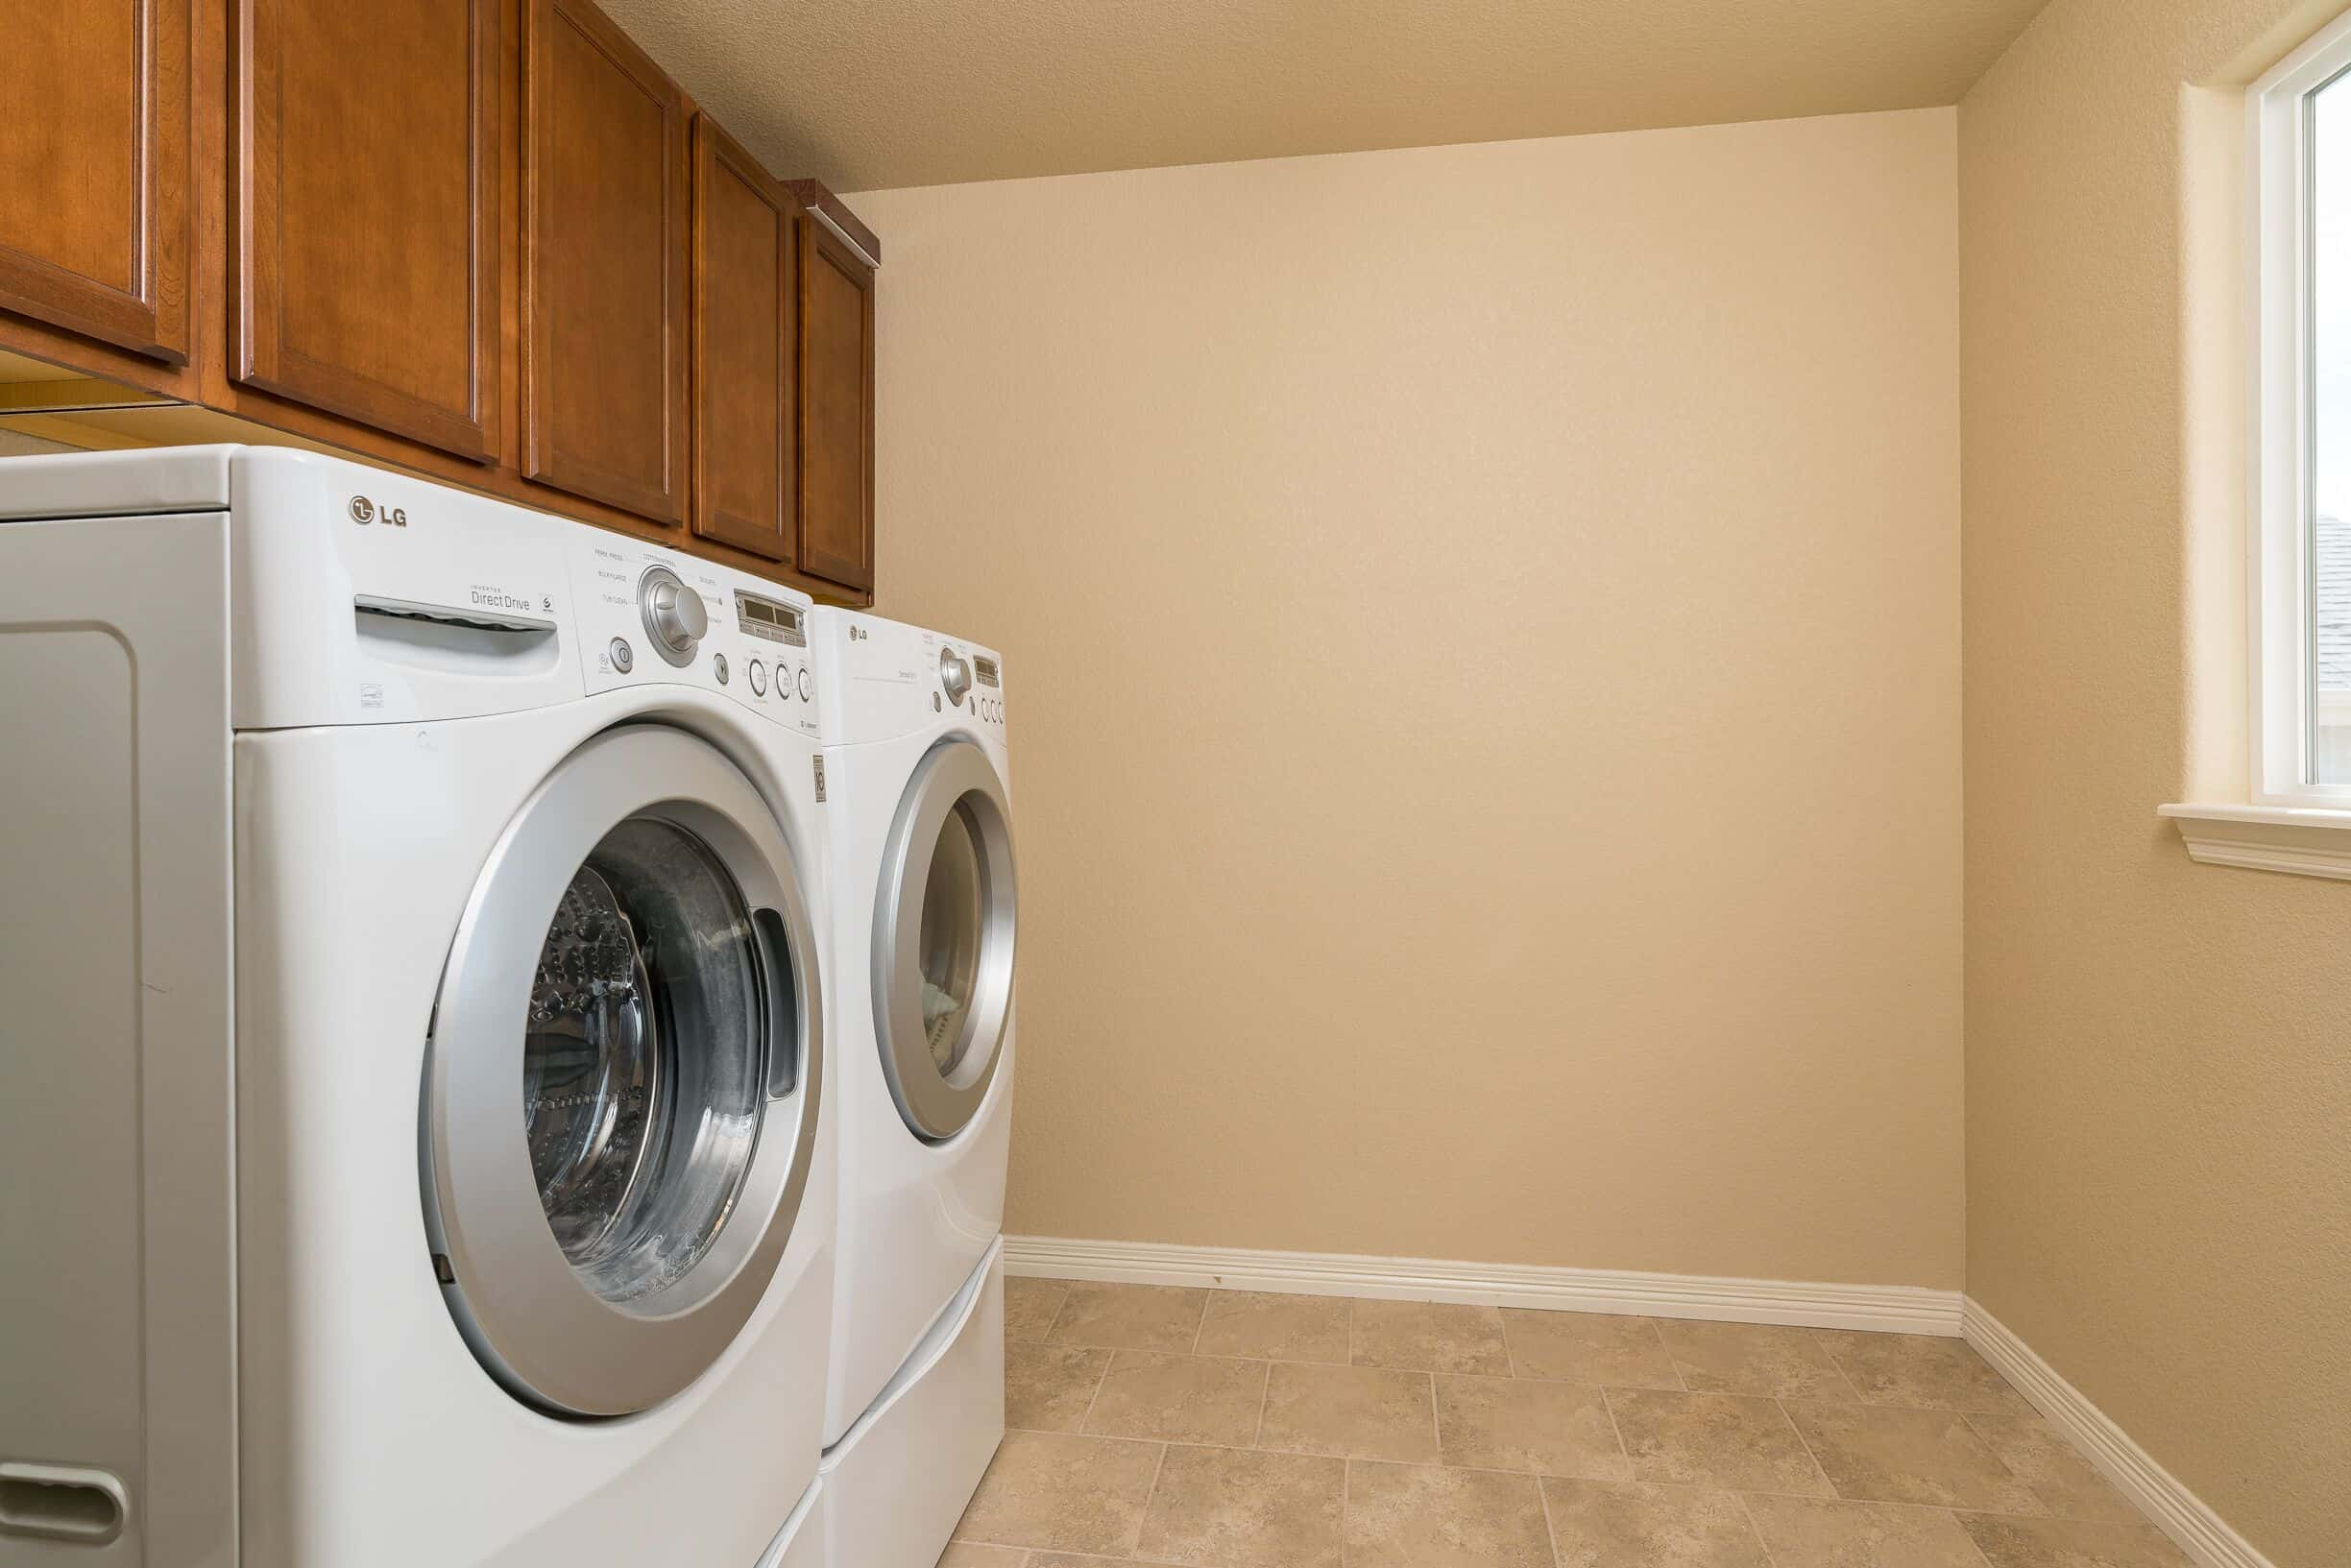 Upper Laundry Room